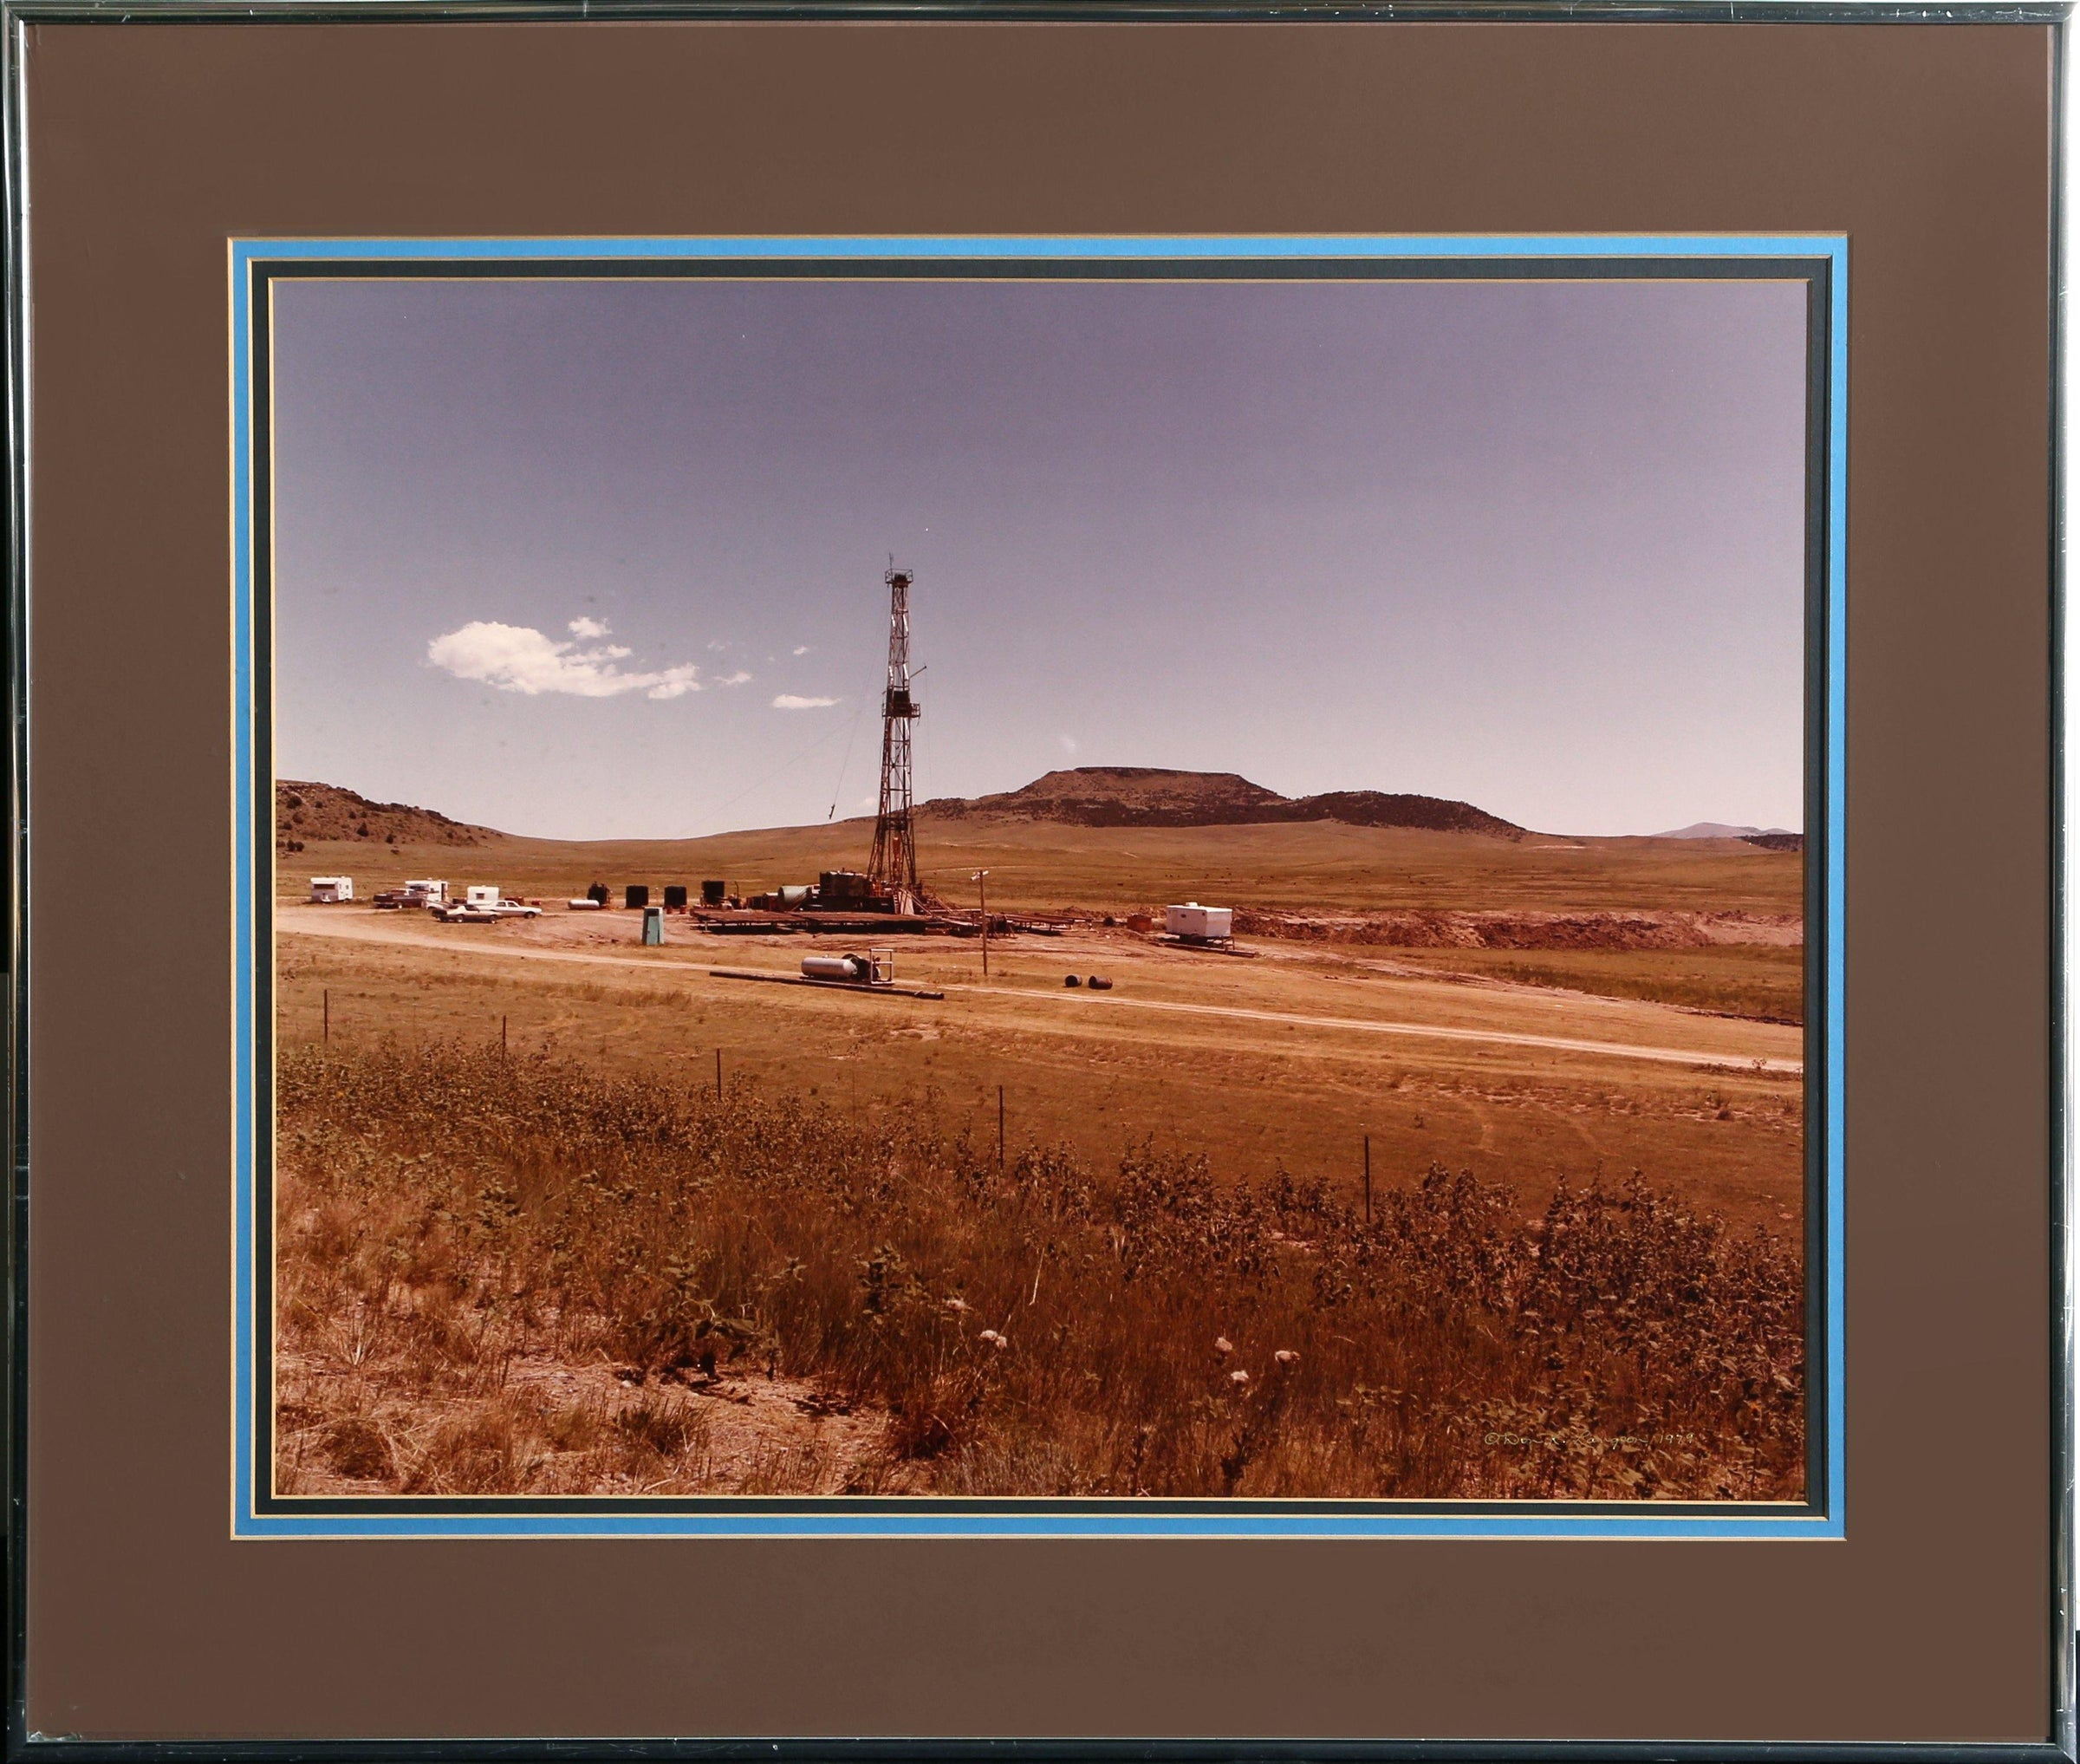 Don K. Langson, Oil Well 1 Color - RoGallery